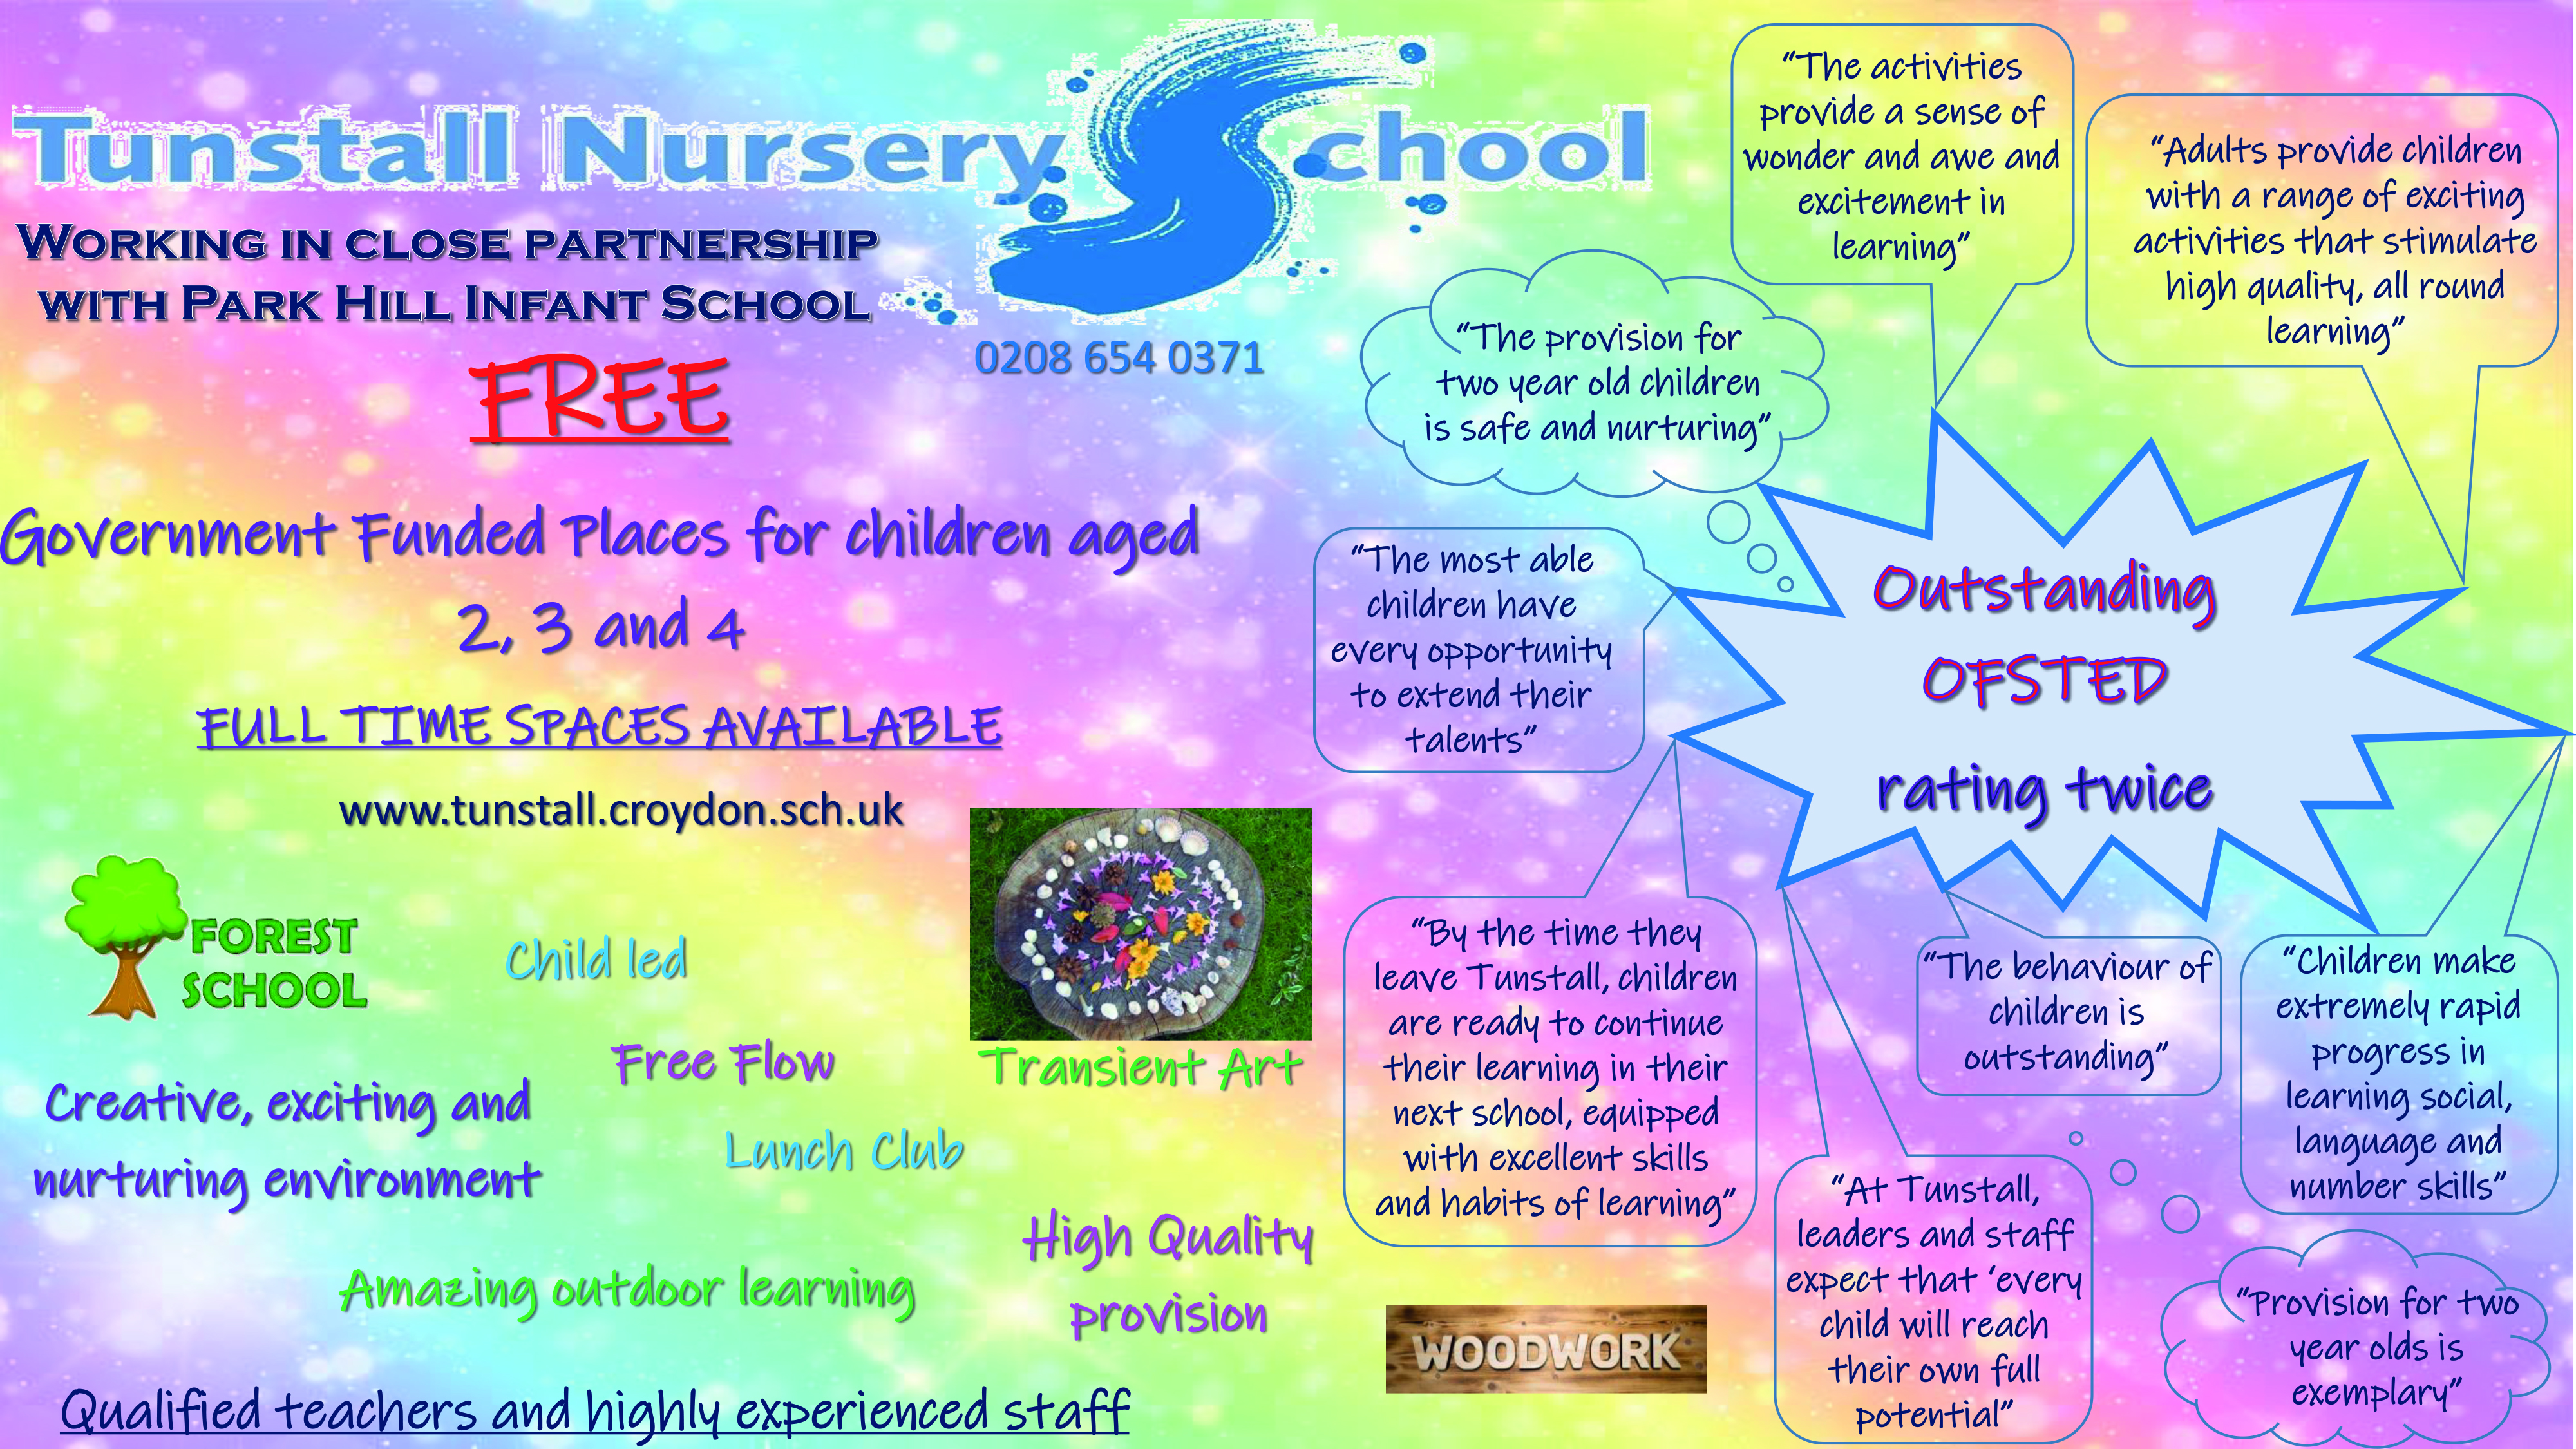 Tunstall Nursery School Advert